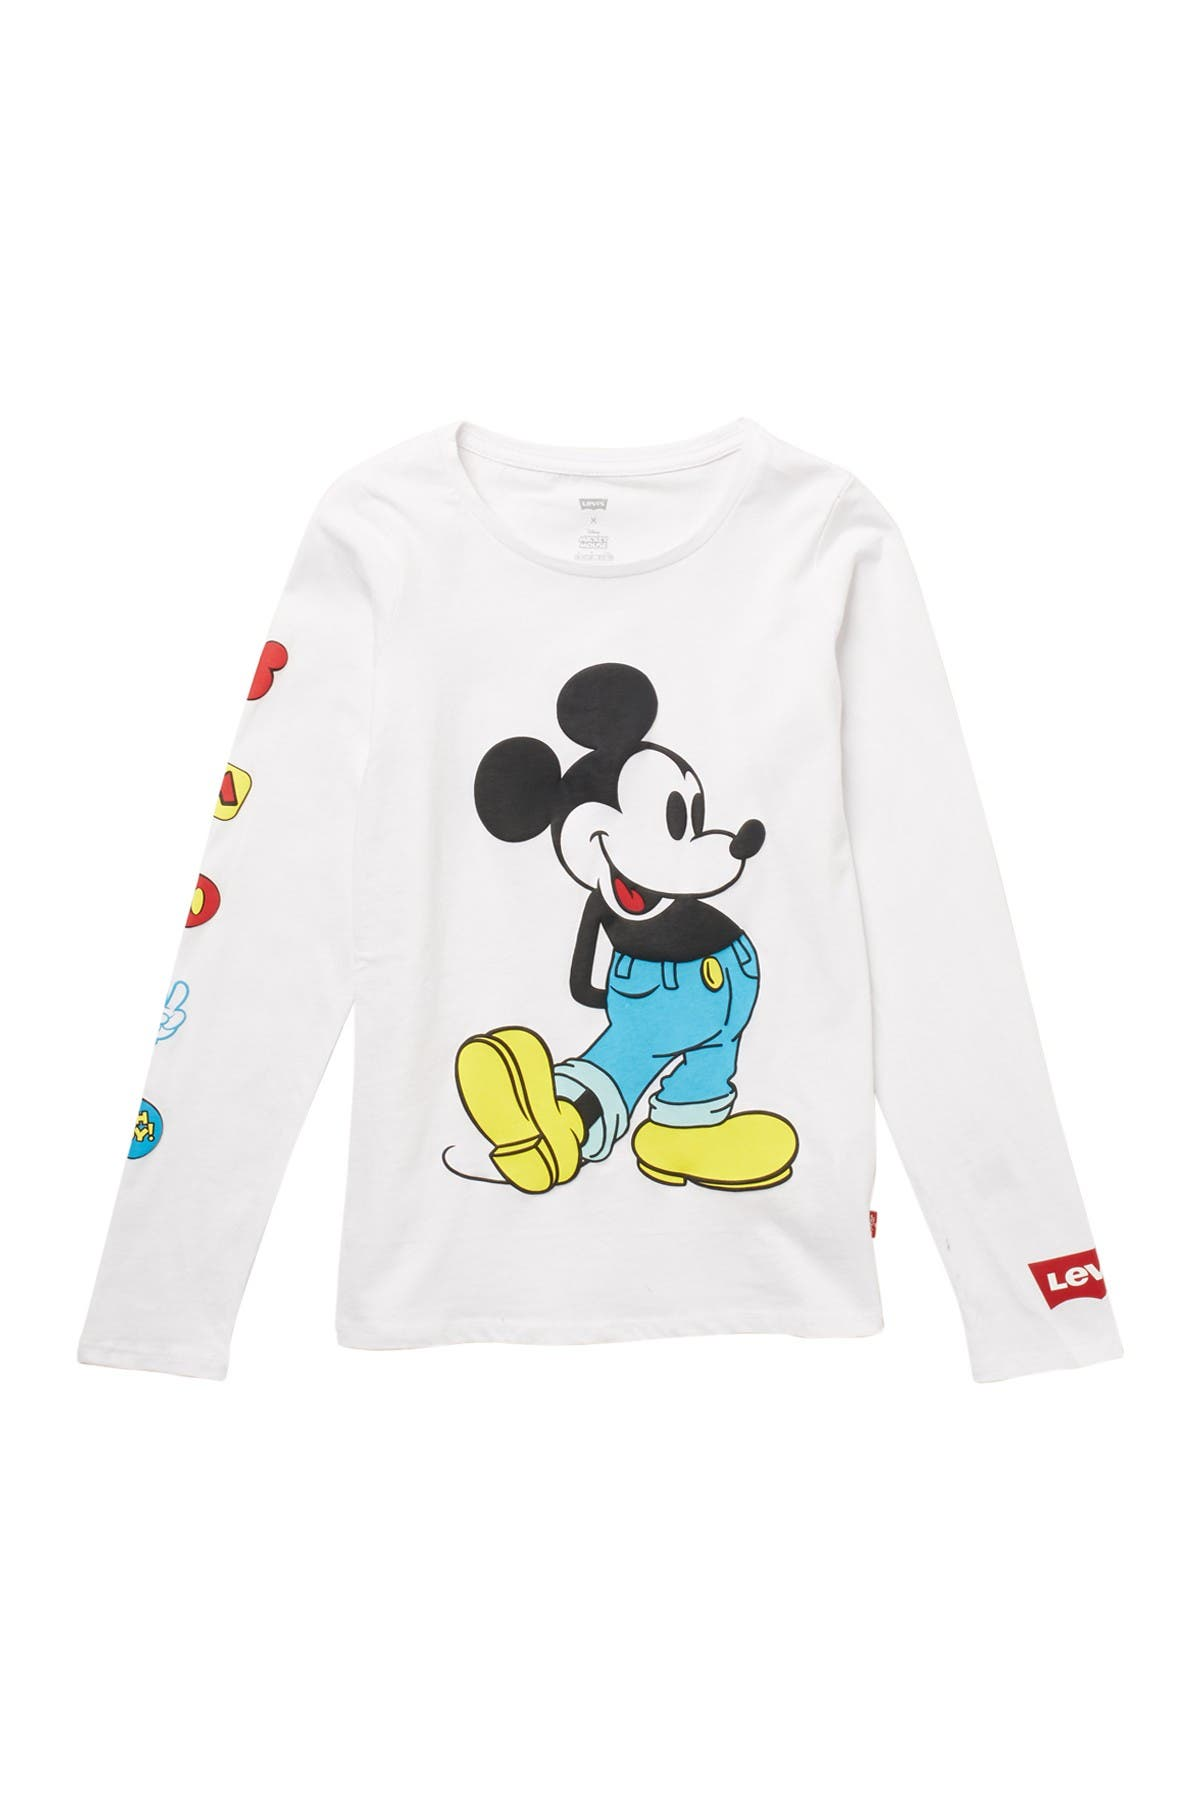 Disney/'s Official Mickey Mouse Club Long Sleeve T-shirt Size 10//12 Unisex NEW